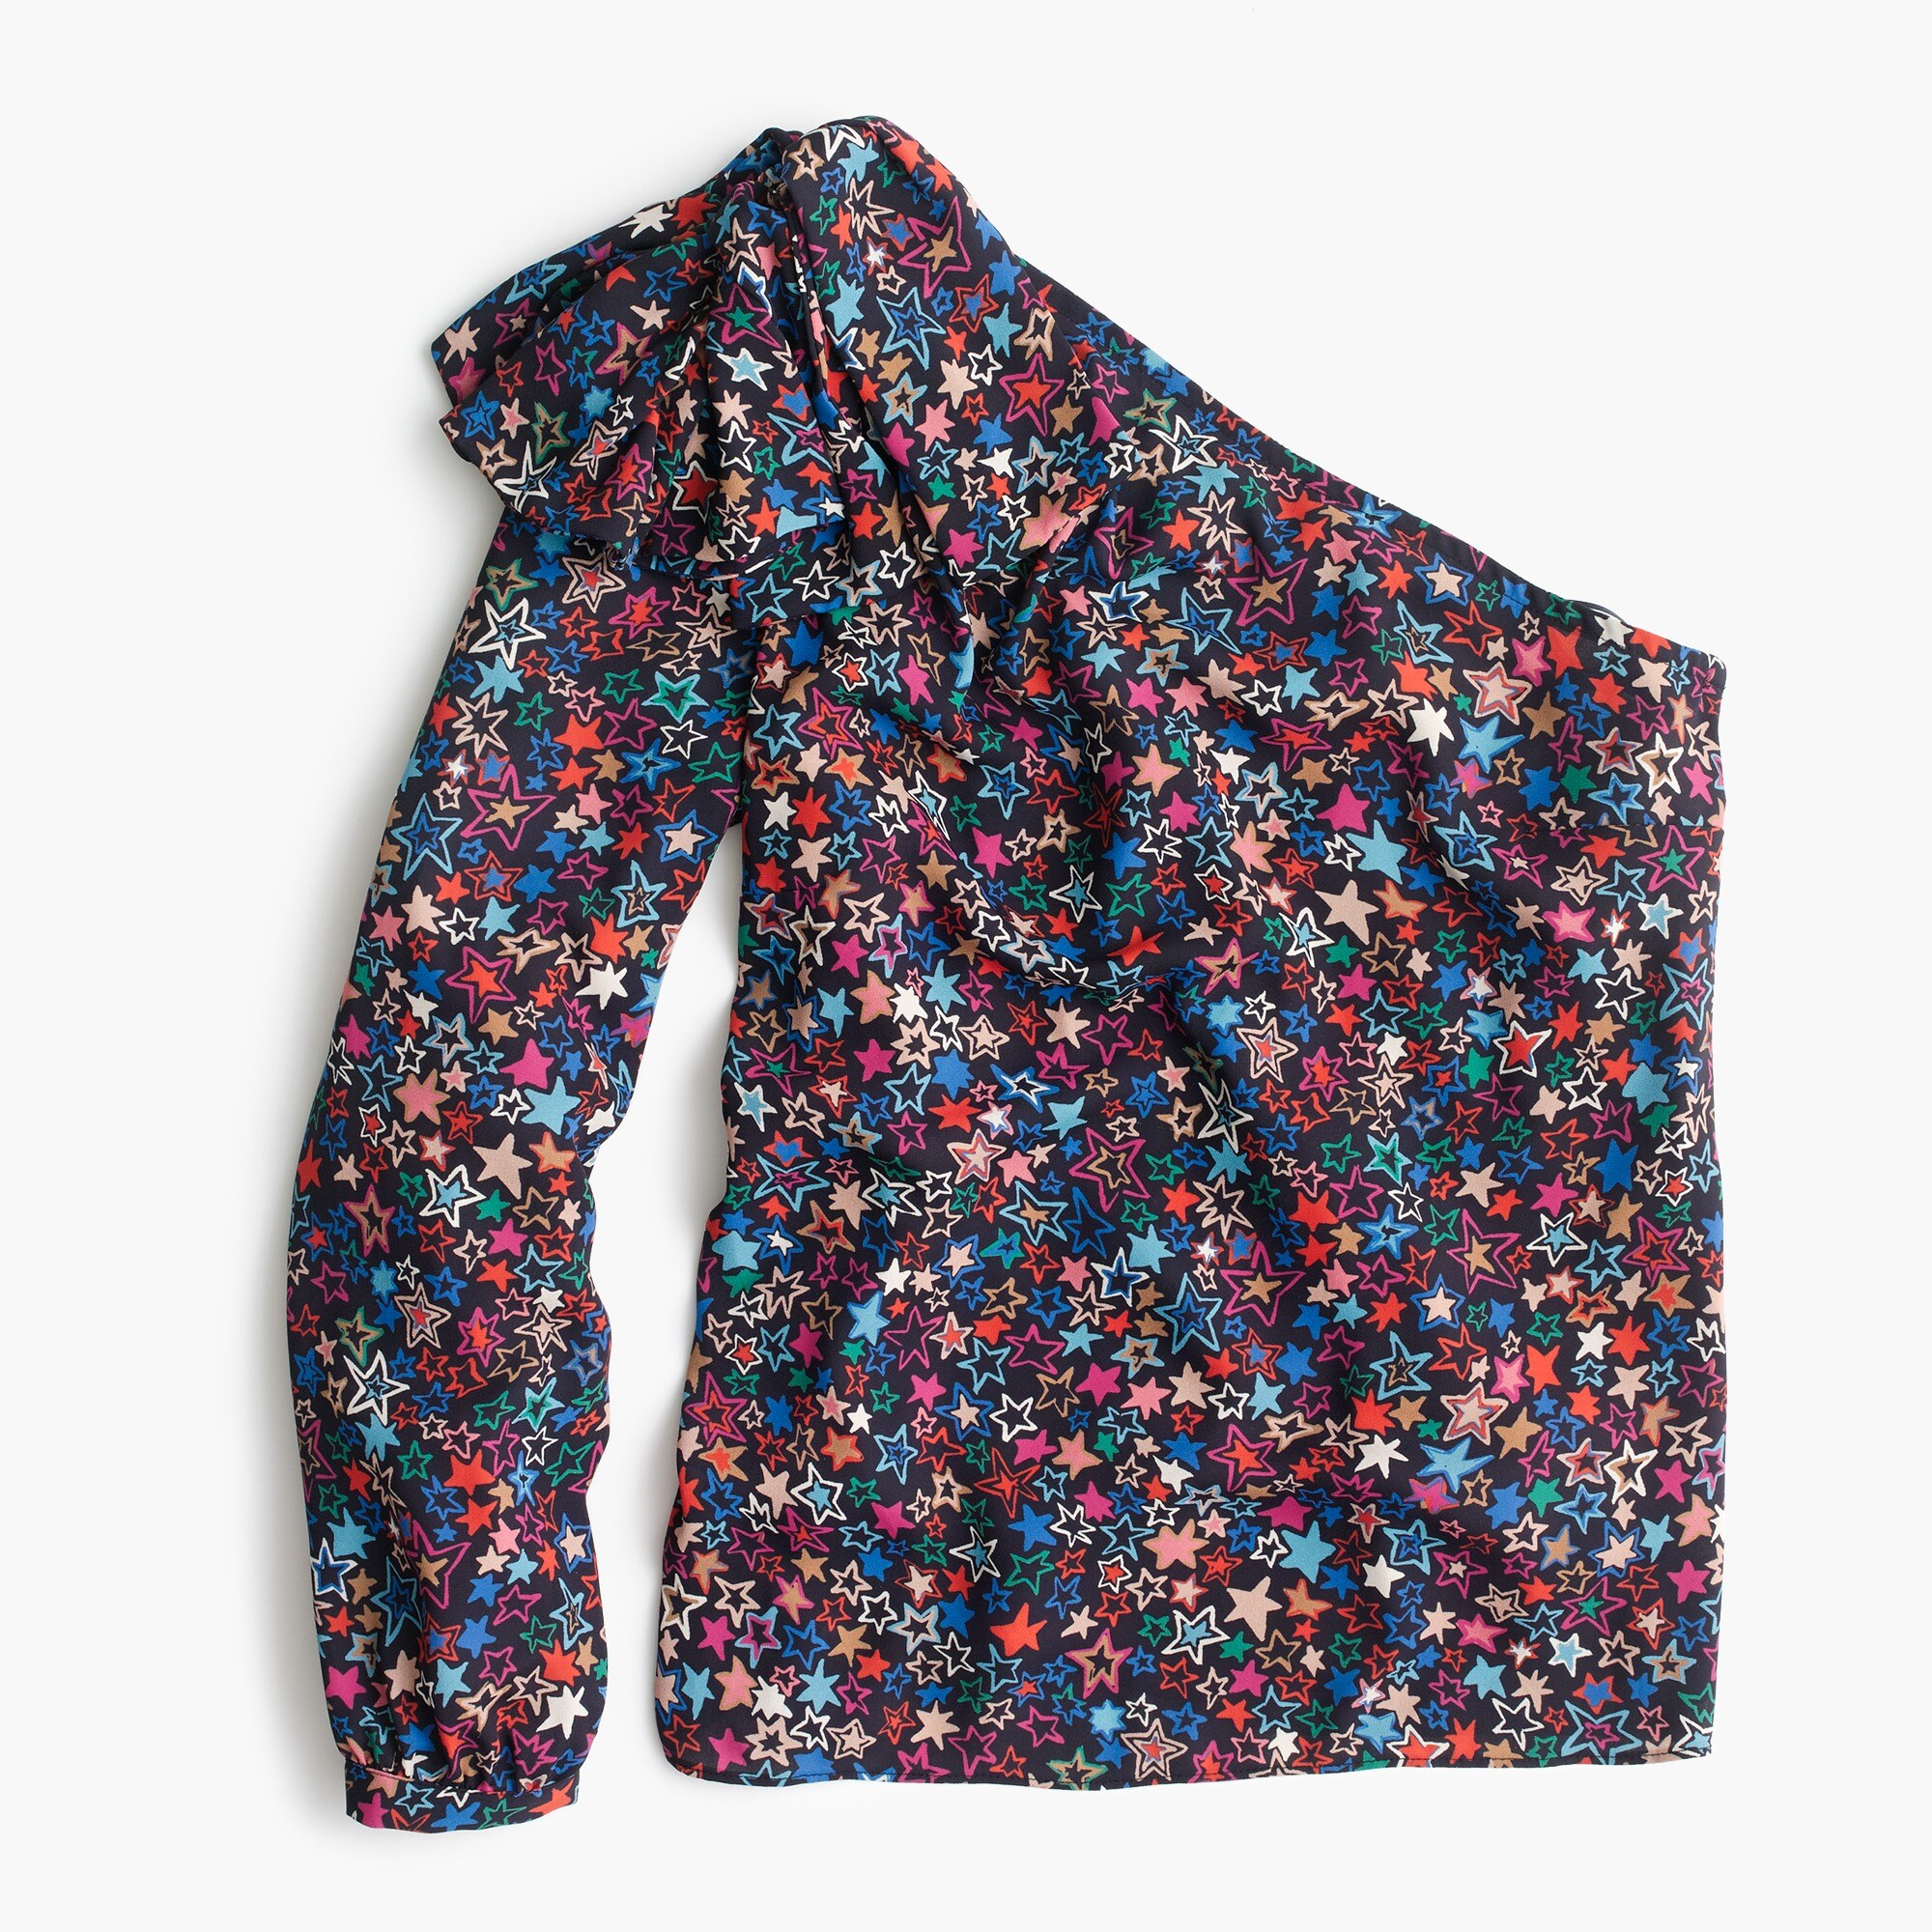 Image 3 for Petite one-shoulder top in kaleidoscope star print